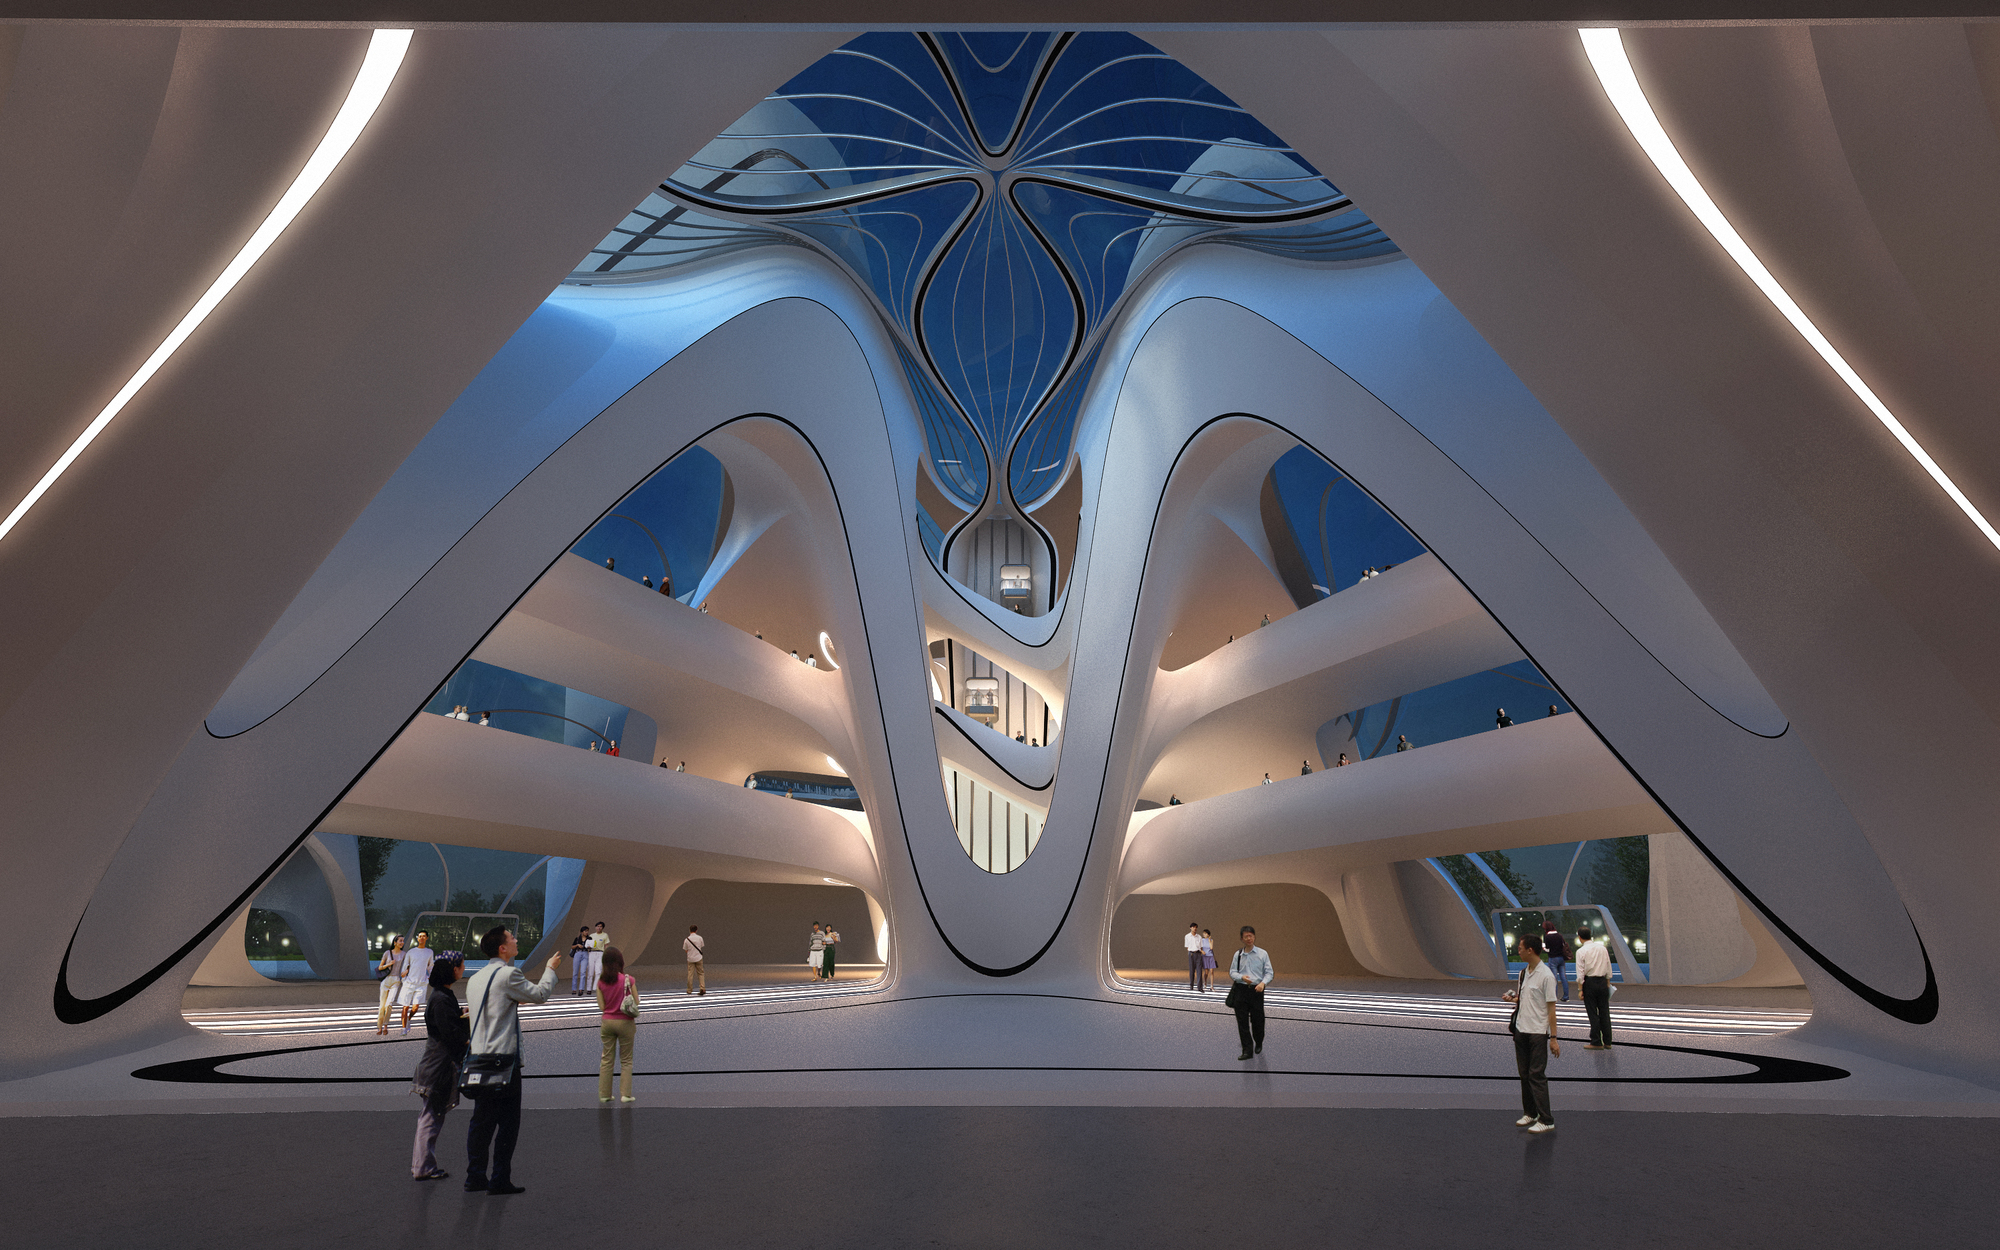 ZAHA HADID ARCHITECTS CHANGSHA MEIXIHU INTERNATIONAL CULTURE AND ART CENTER